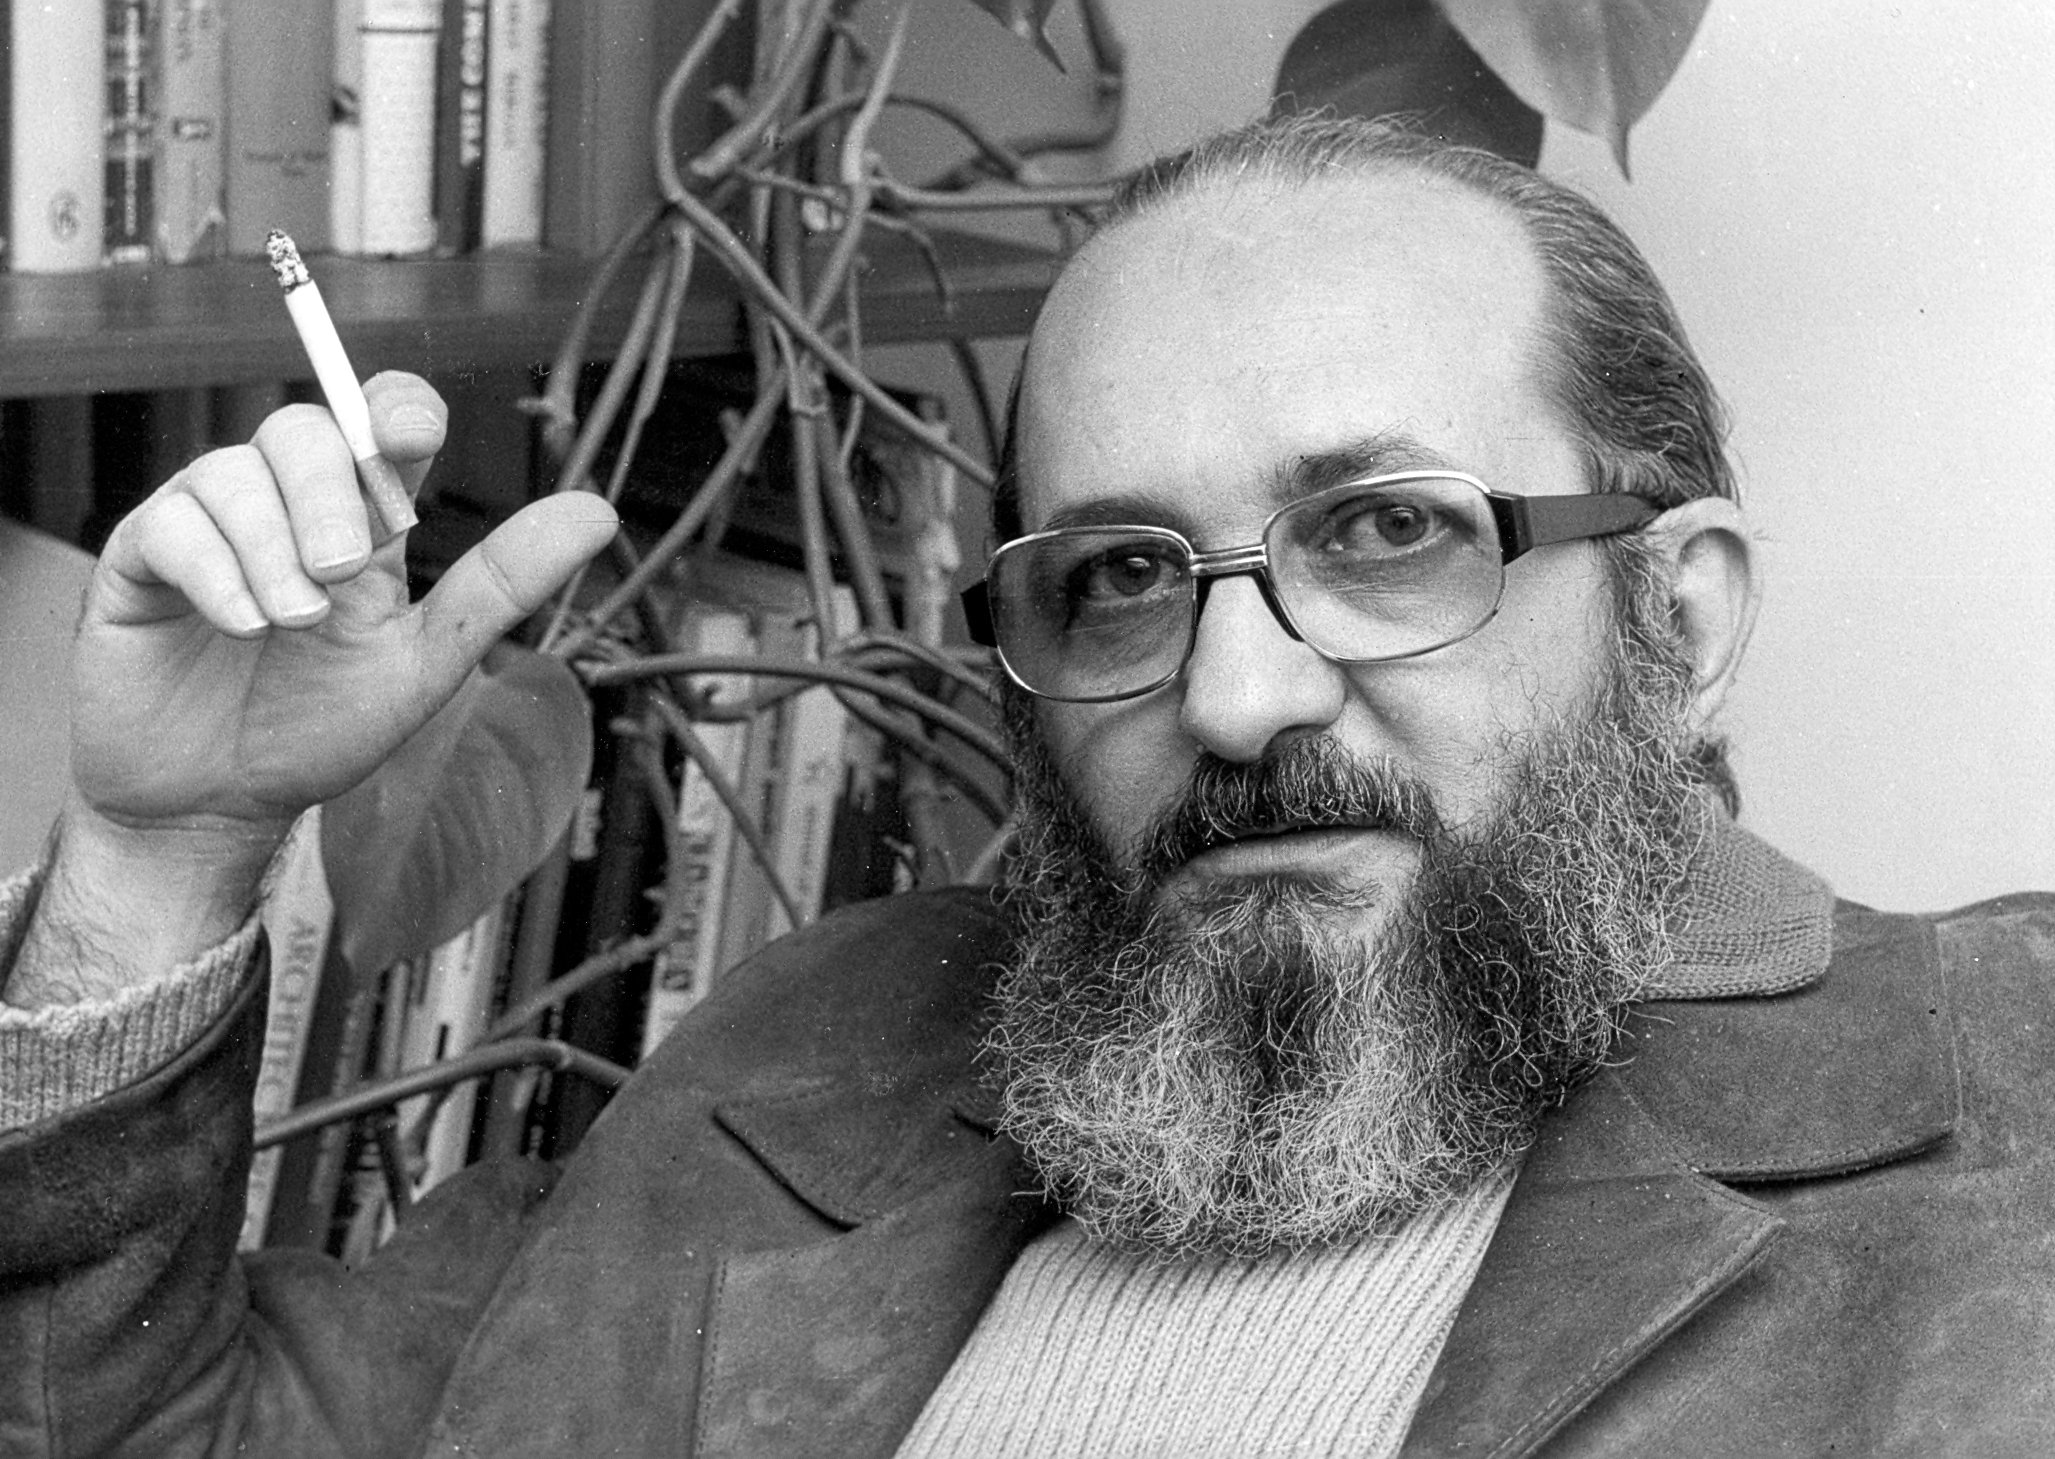 1970: Brazilian educator and philosopher Paulo Freire who was a leading advocate of critical pedagogy. He is best known for his influential work, Pedagogy of the Oppressed. (Photograph by Getty Images)